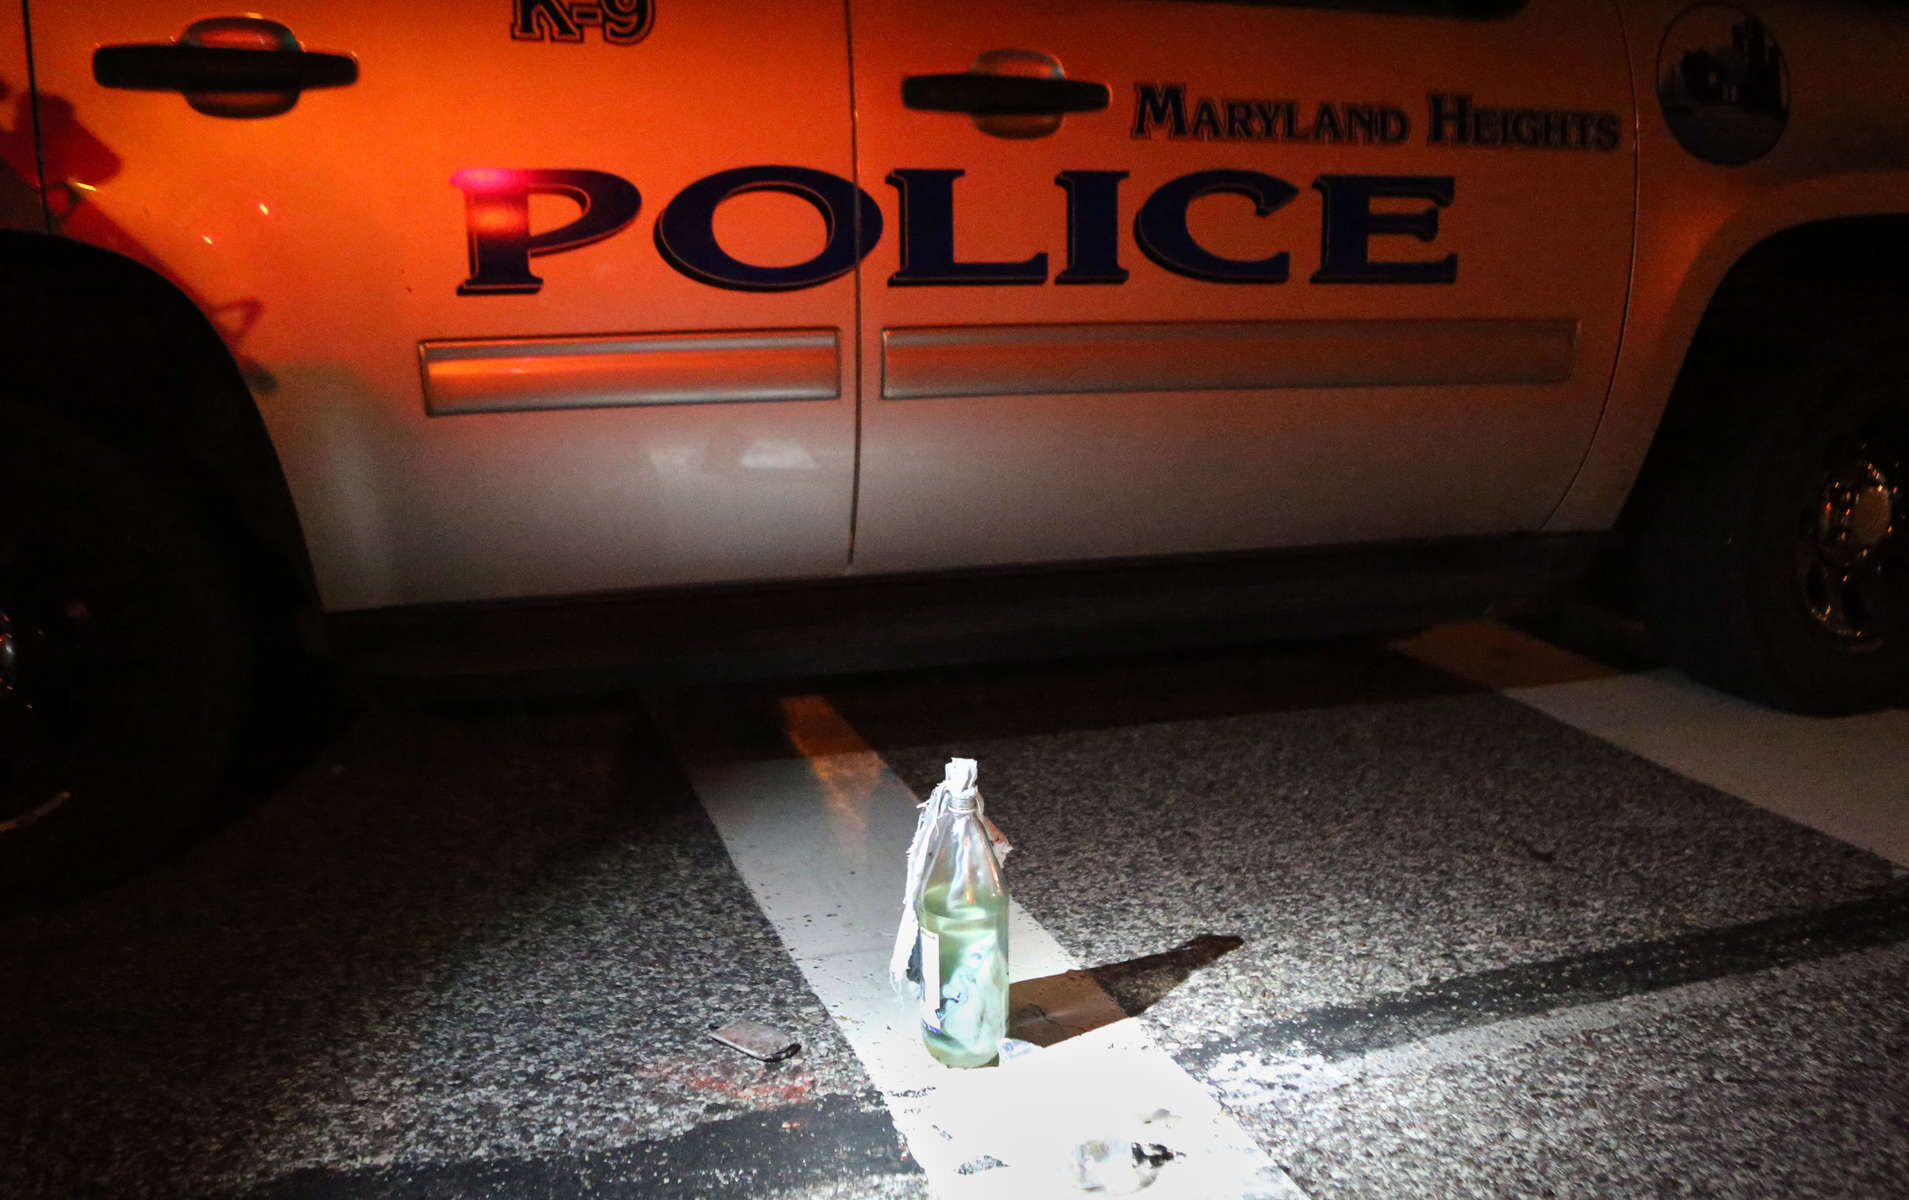 A Molotov cocktail sits near a police car after it was removed from a truck carrying 12 people when it was stopped along W. Florissant Avenue near Canfield Drive in Ferguson on Tuesday, Aug. 19, 2014.  The police also found two loaded guns on the people in the truck.